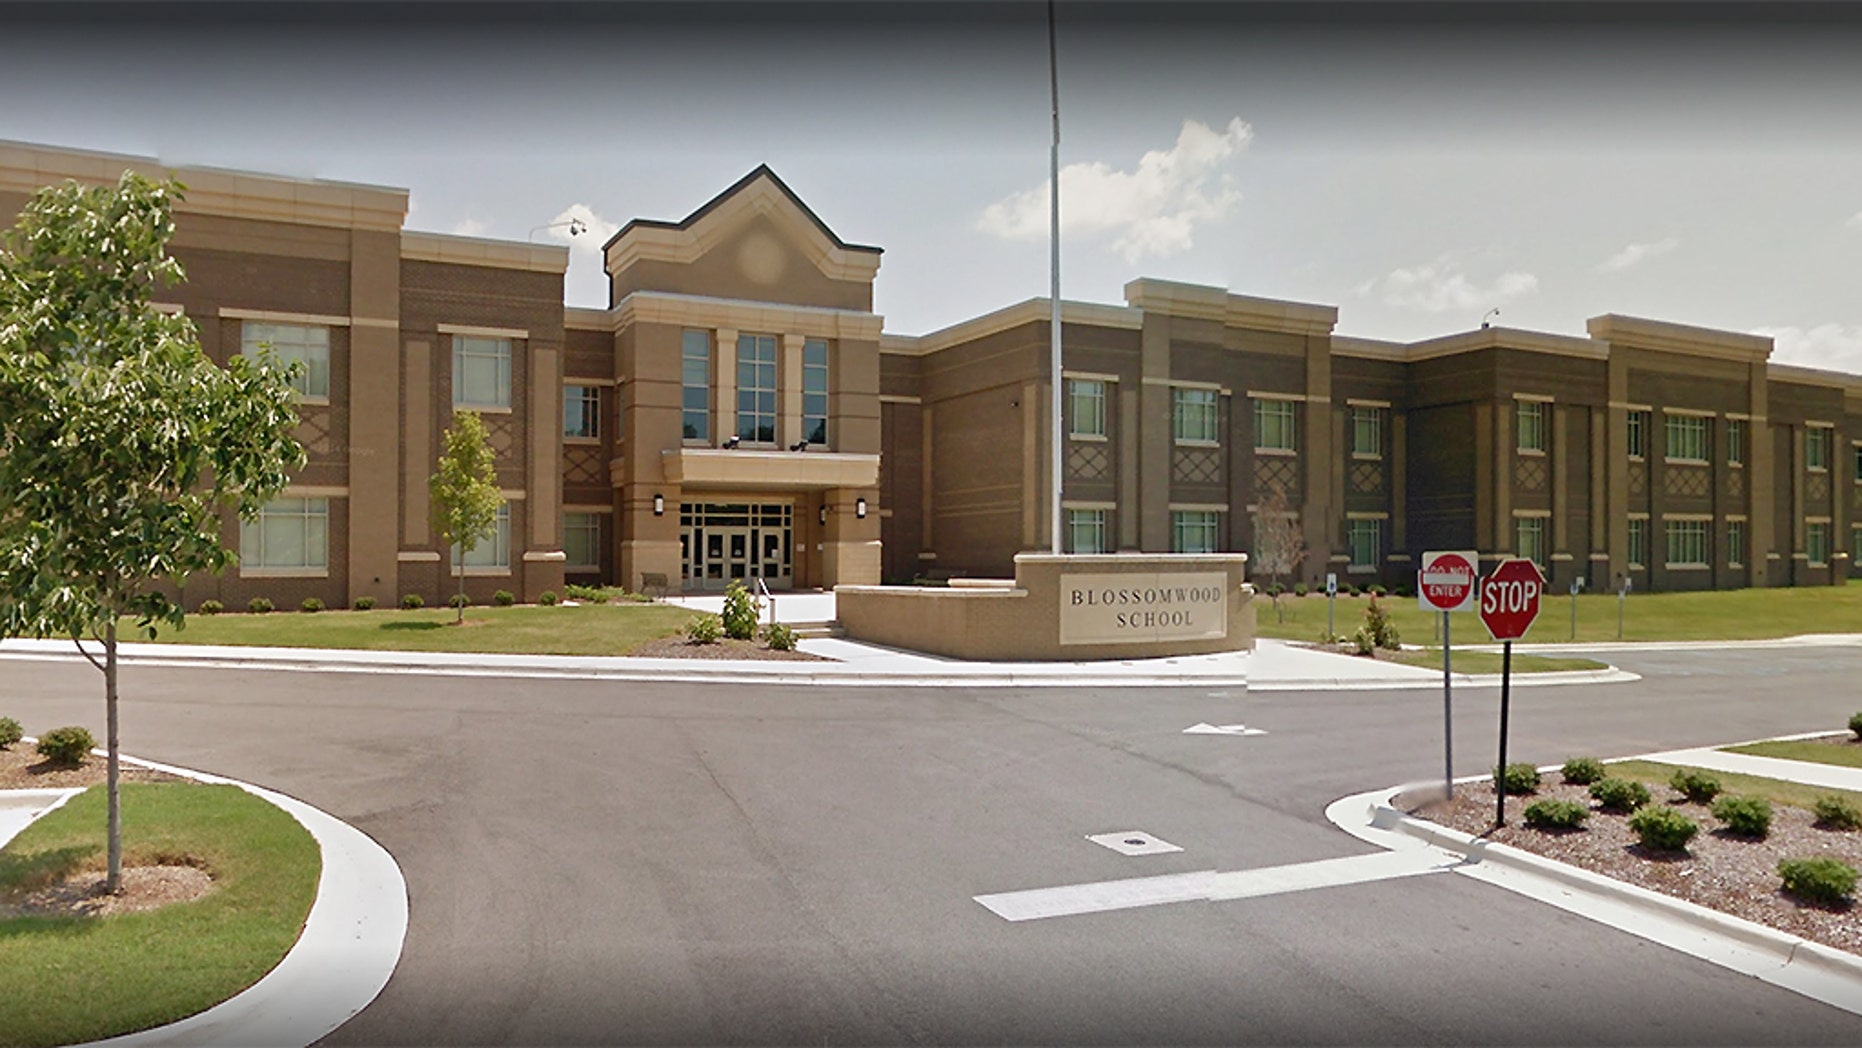 An elementary school student in Alabama allegedly shot himself in the hand after bringing a gun to school.